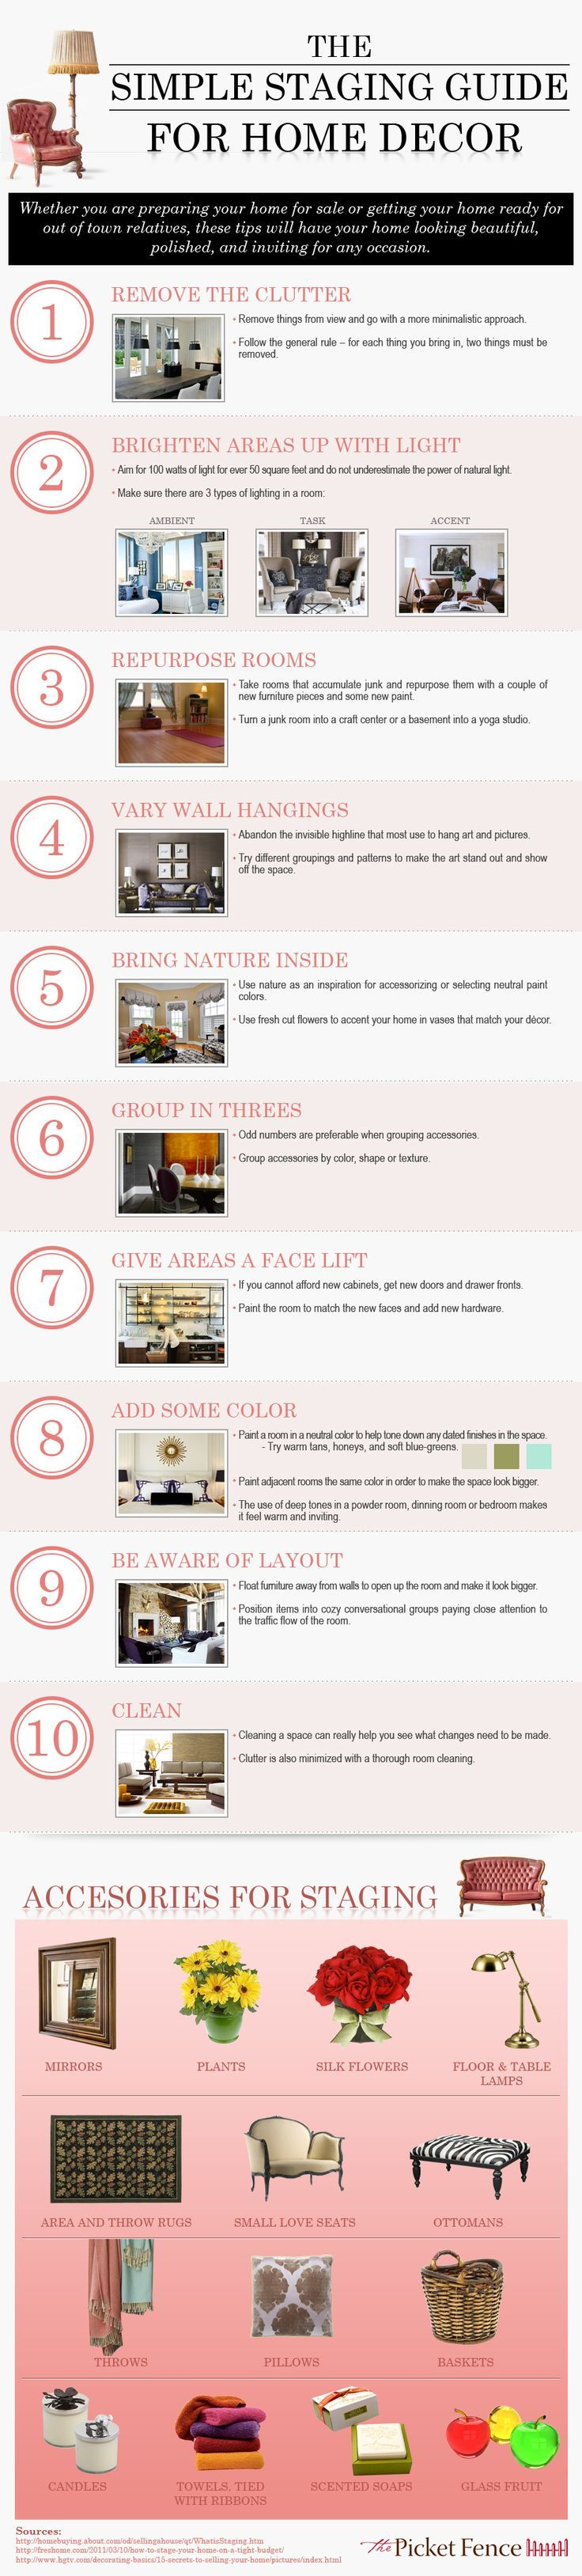 How to stage your home in a few easy steps